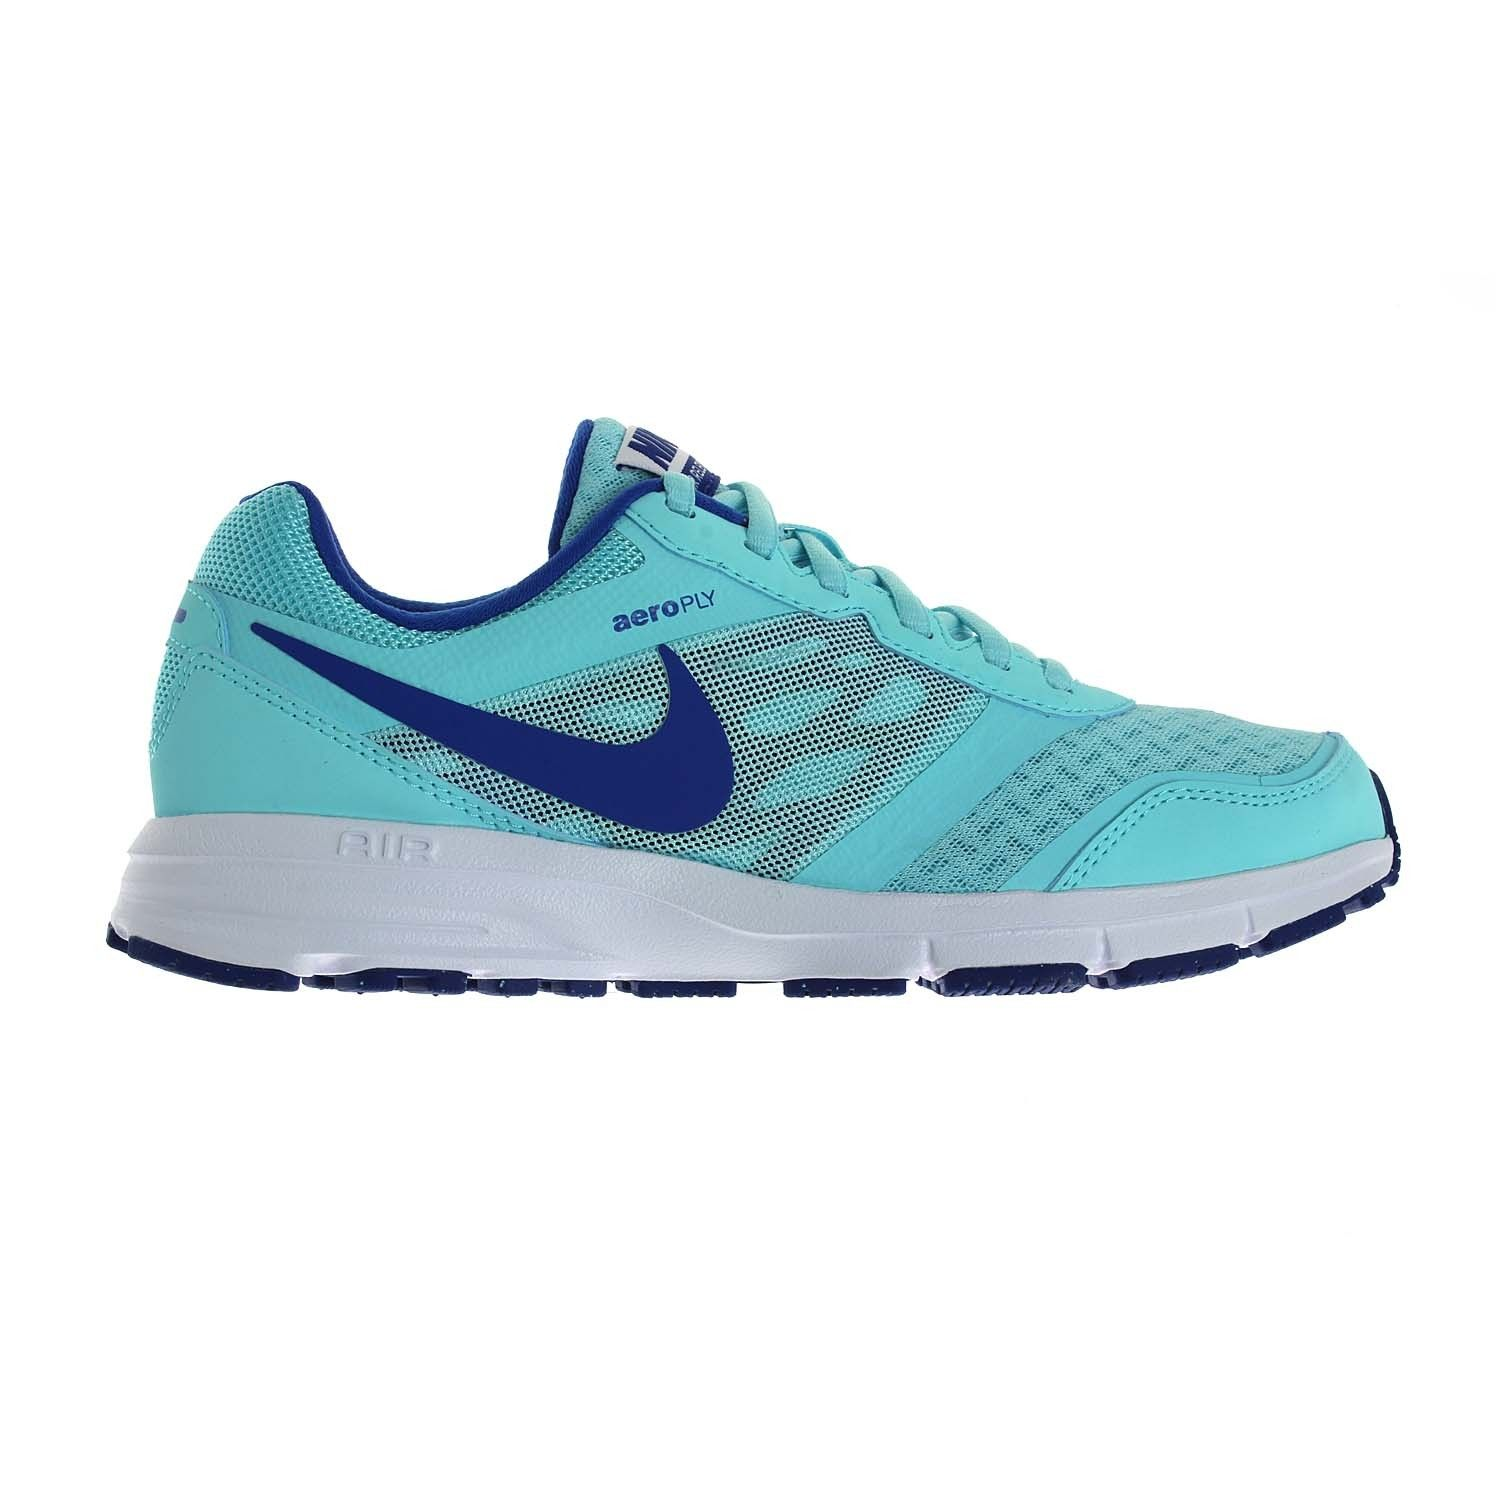 Nike Air Relentless 4 MSL (685152-405). RelentlessNike AirRunning ShoesRacing  ...